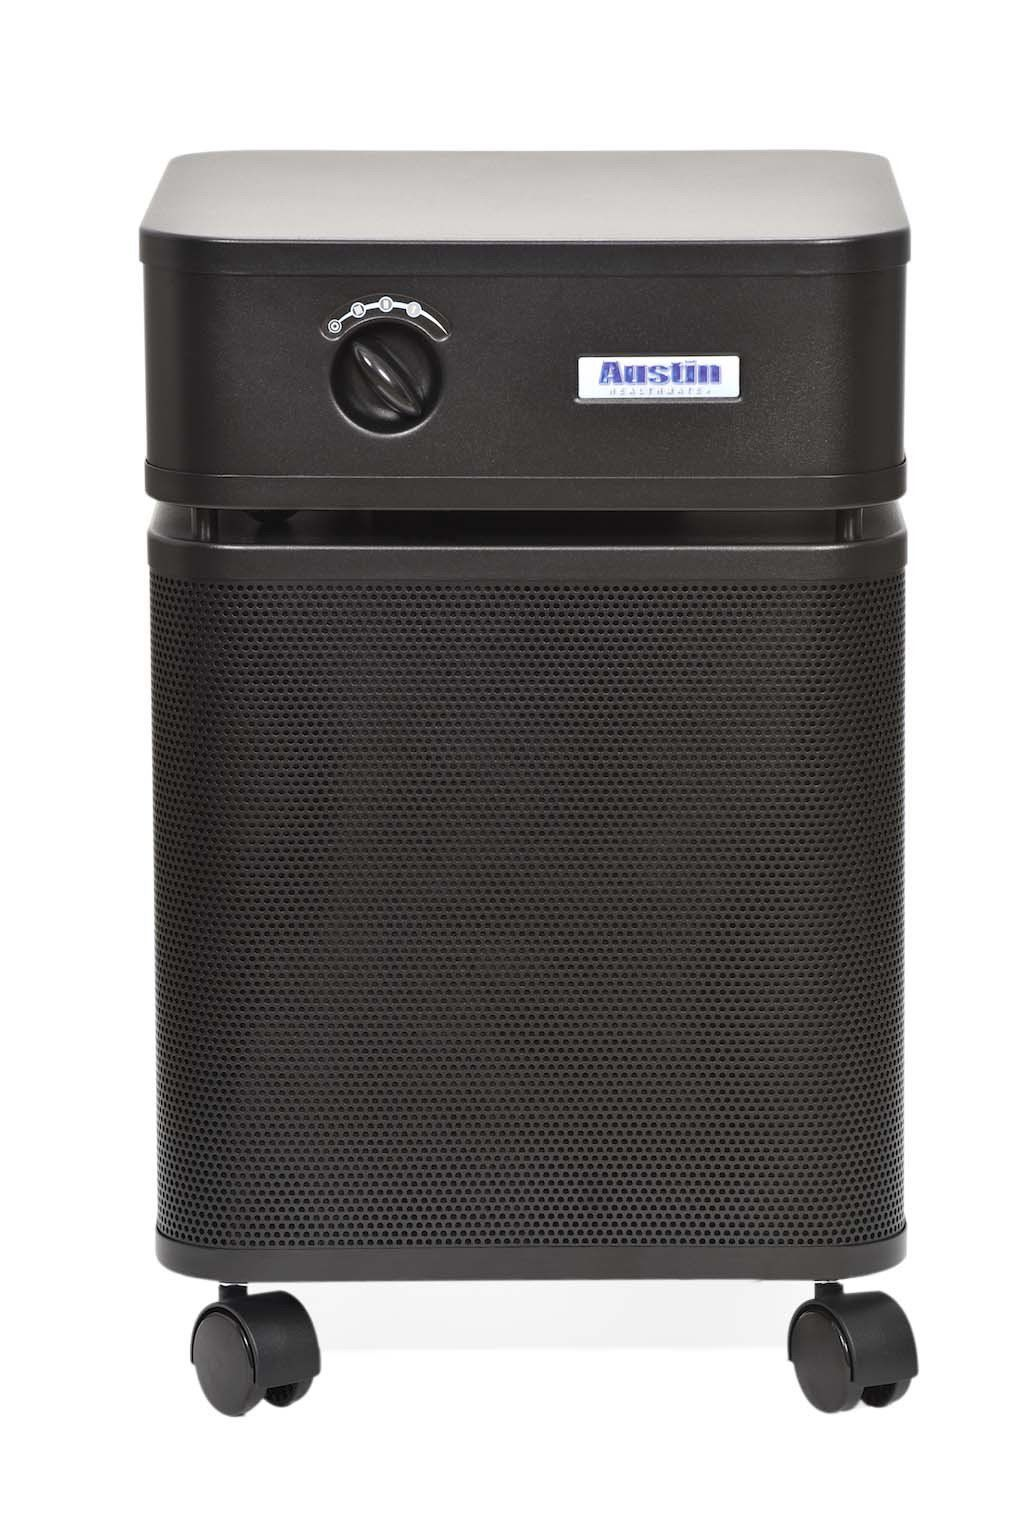 HealthMate + Plus HM450 Standard HEPA Air Purifier Air